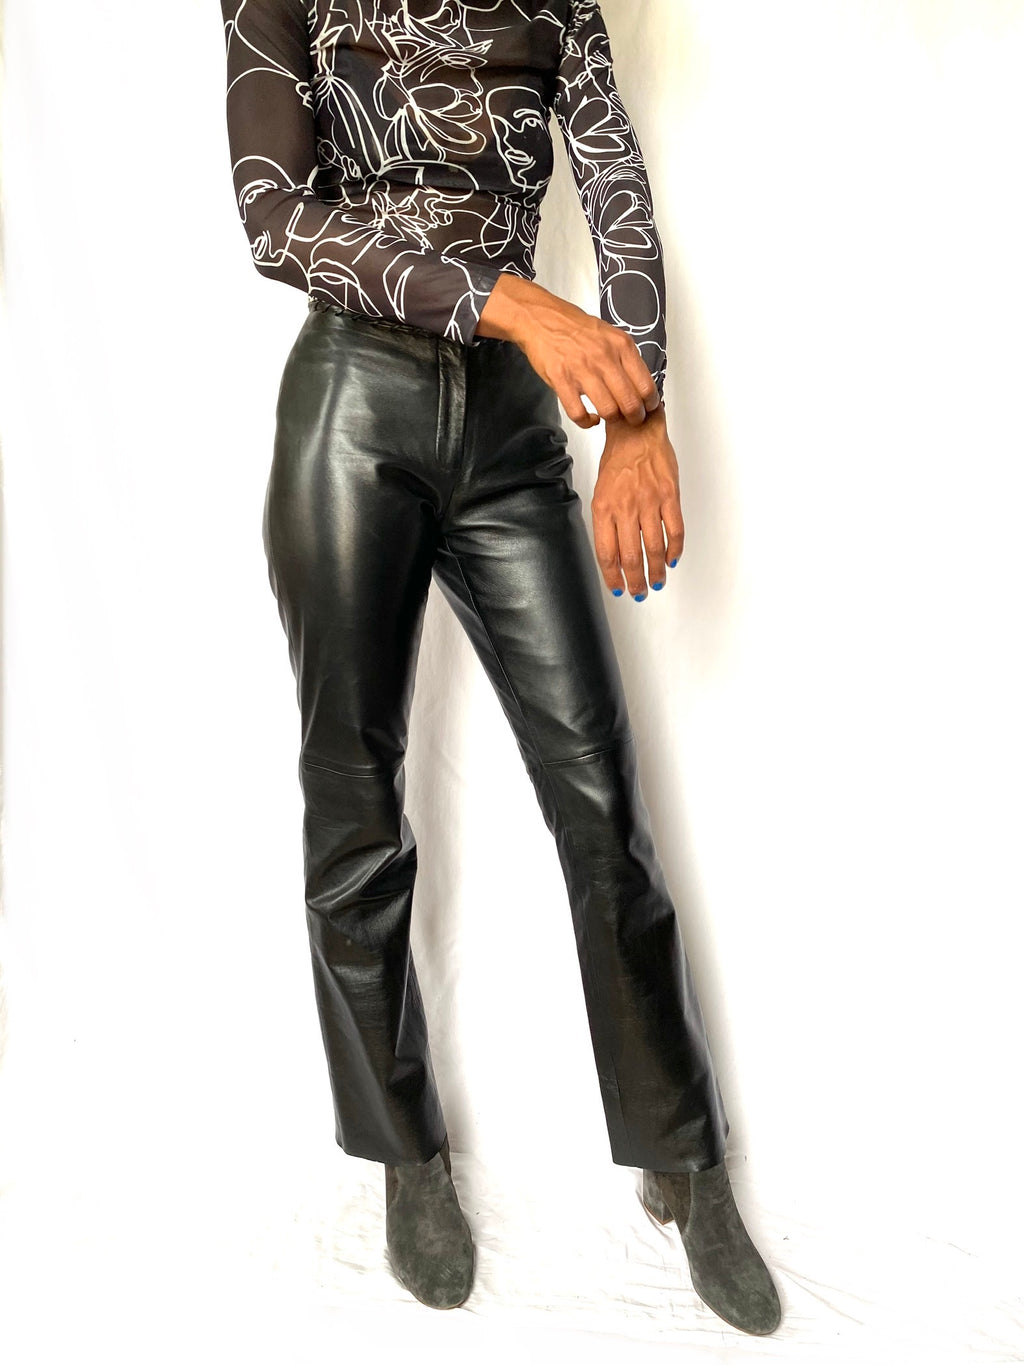 Black Leather Pants 32 x 31